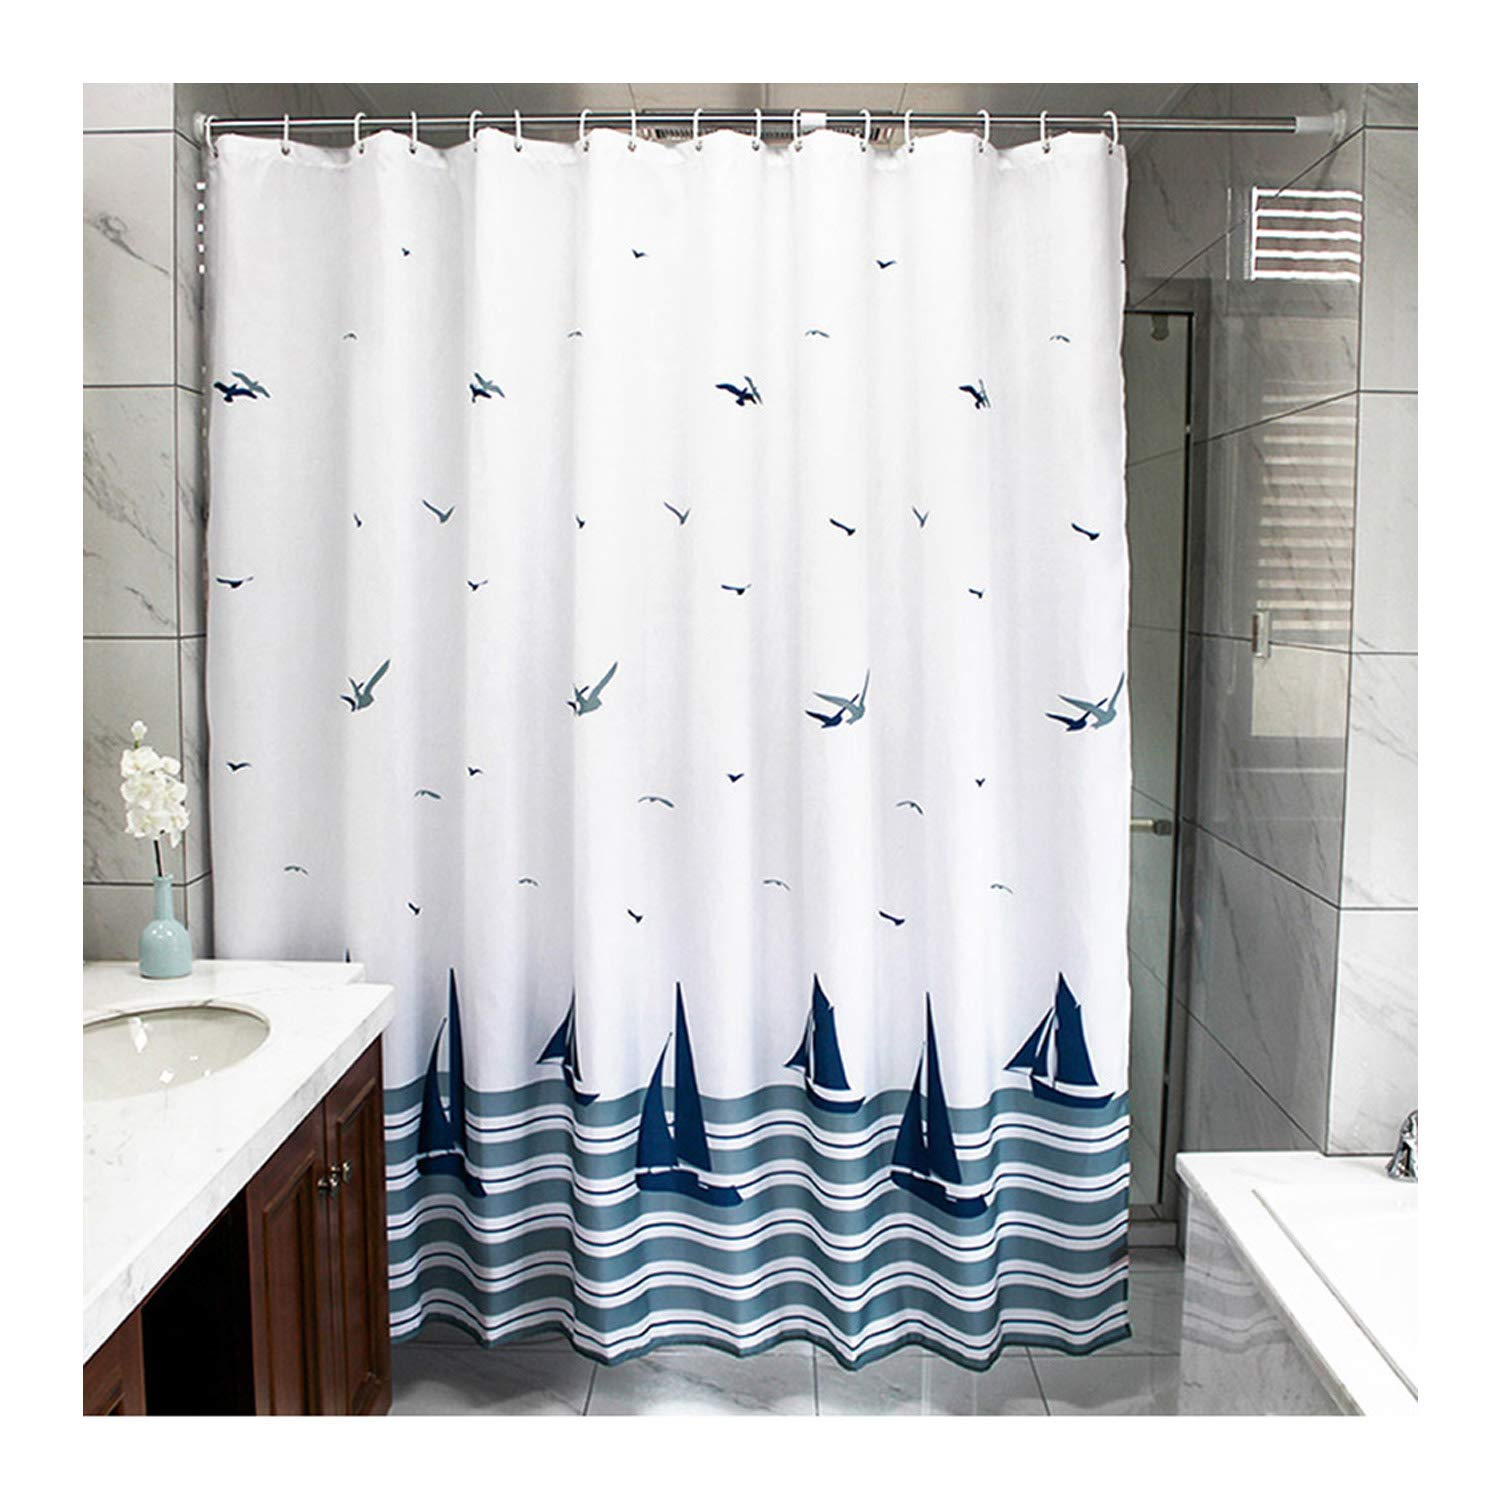 Ufatansy Beach Theme Boat Print Shower Curtain No More Mildews And Waterproof White Navy Blue Bathroom Durable Polyester With Hooks